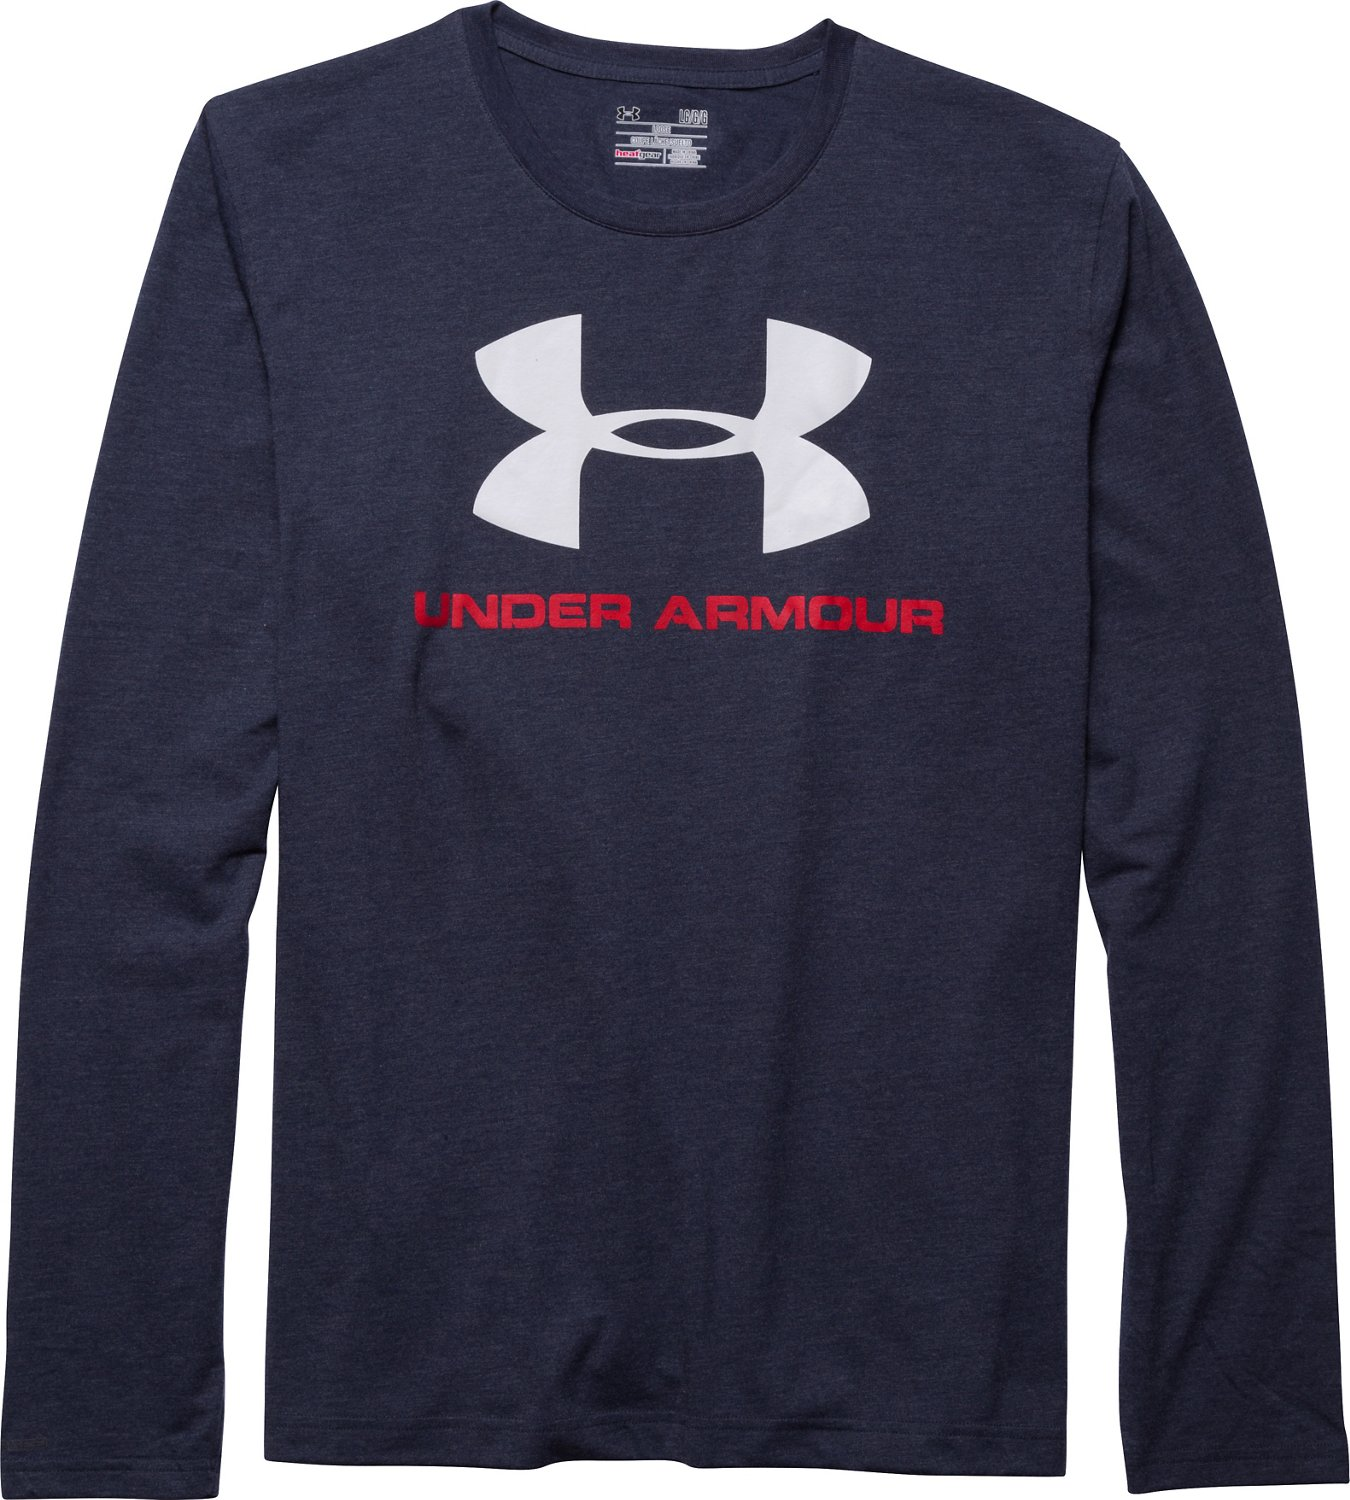 Mens Shirts Academy Apparel Gt Women39s Tshirts Tops Couple Personalized Tee Display Product Reviews For Under Armour Sportstyle Big Logo T Shirt